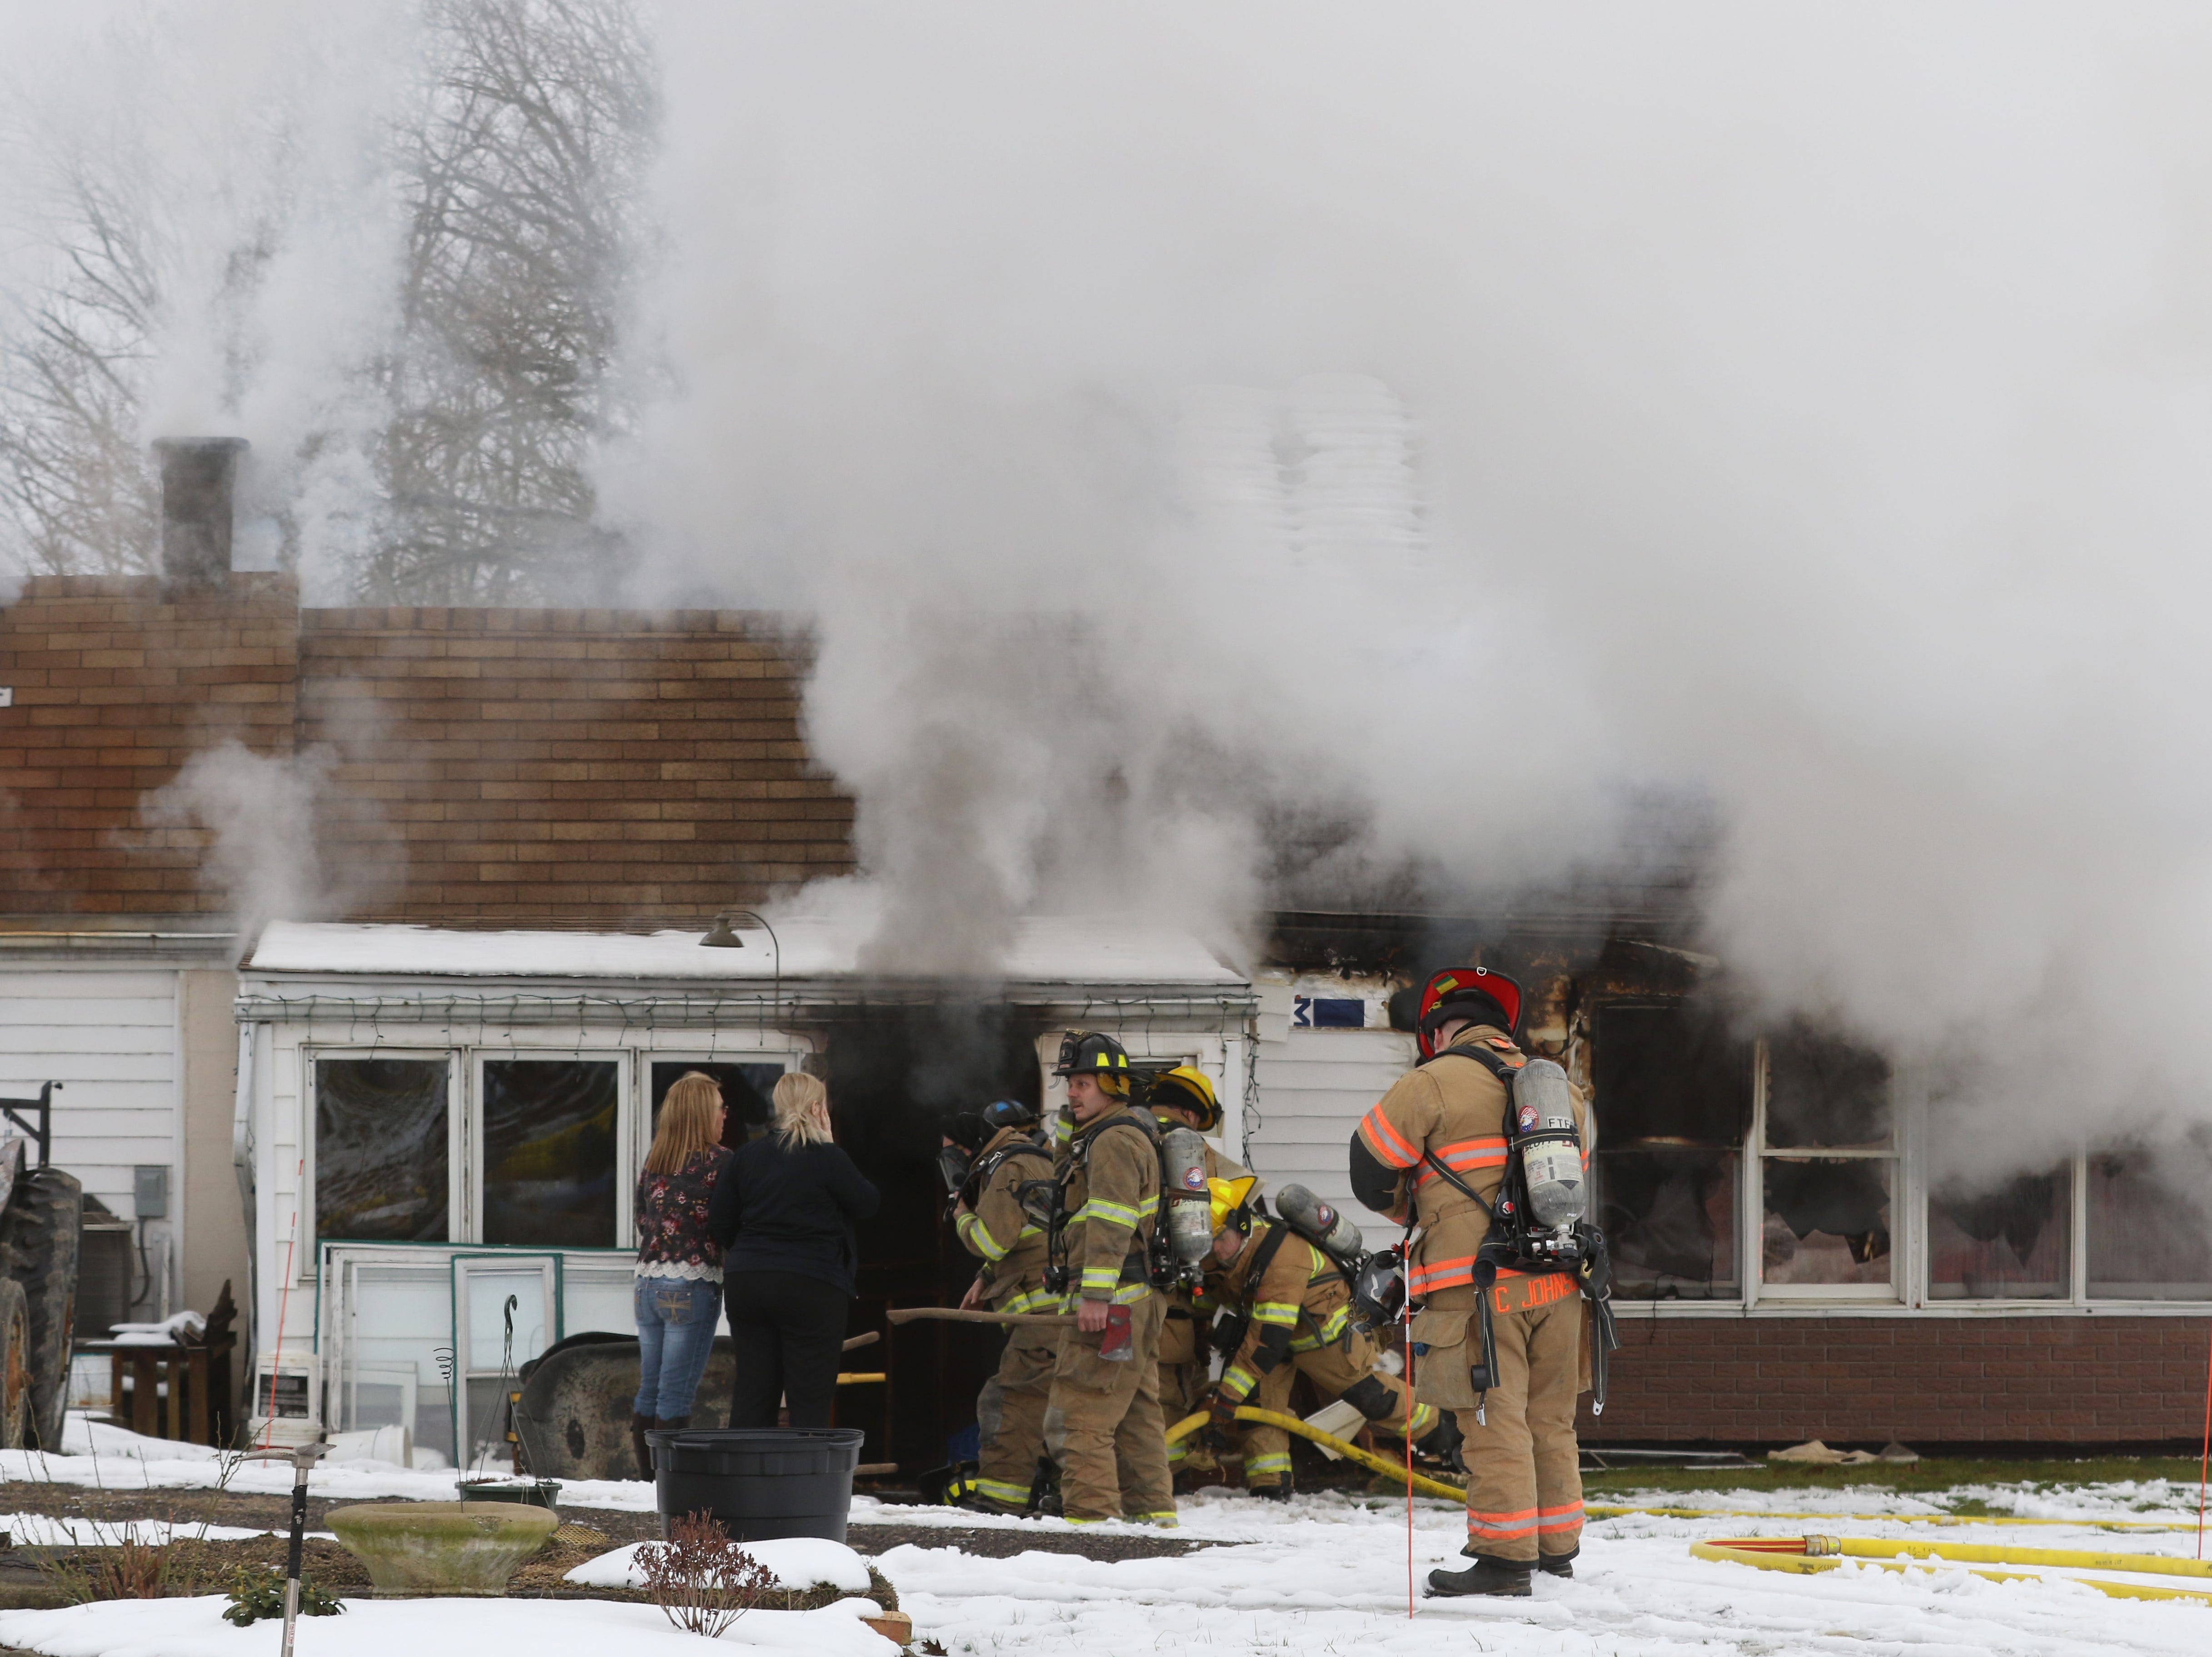 Fire damaged the home at 3950 Holbein Drive in Falls Township on Friday. Several animals died in the blaze but no one was injured. Falls and Washington Townships and Zanesville fought the fire.